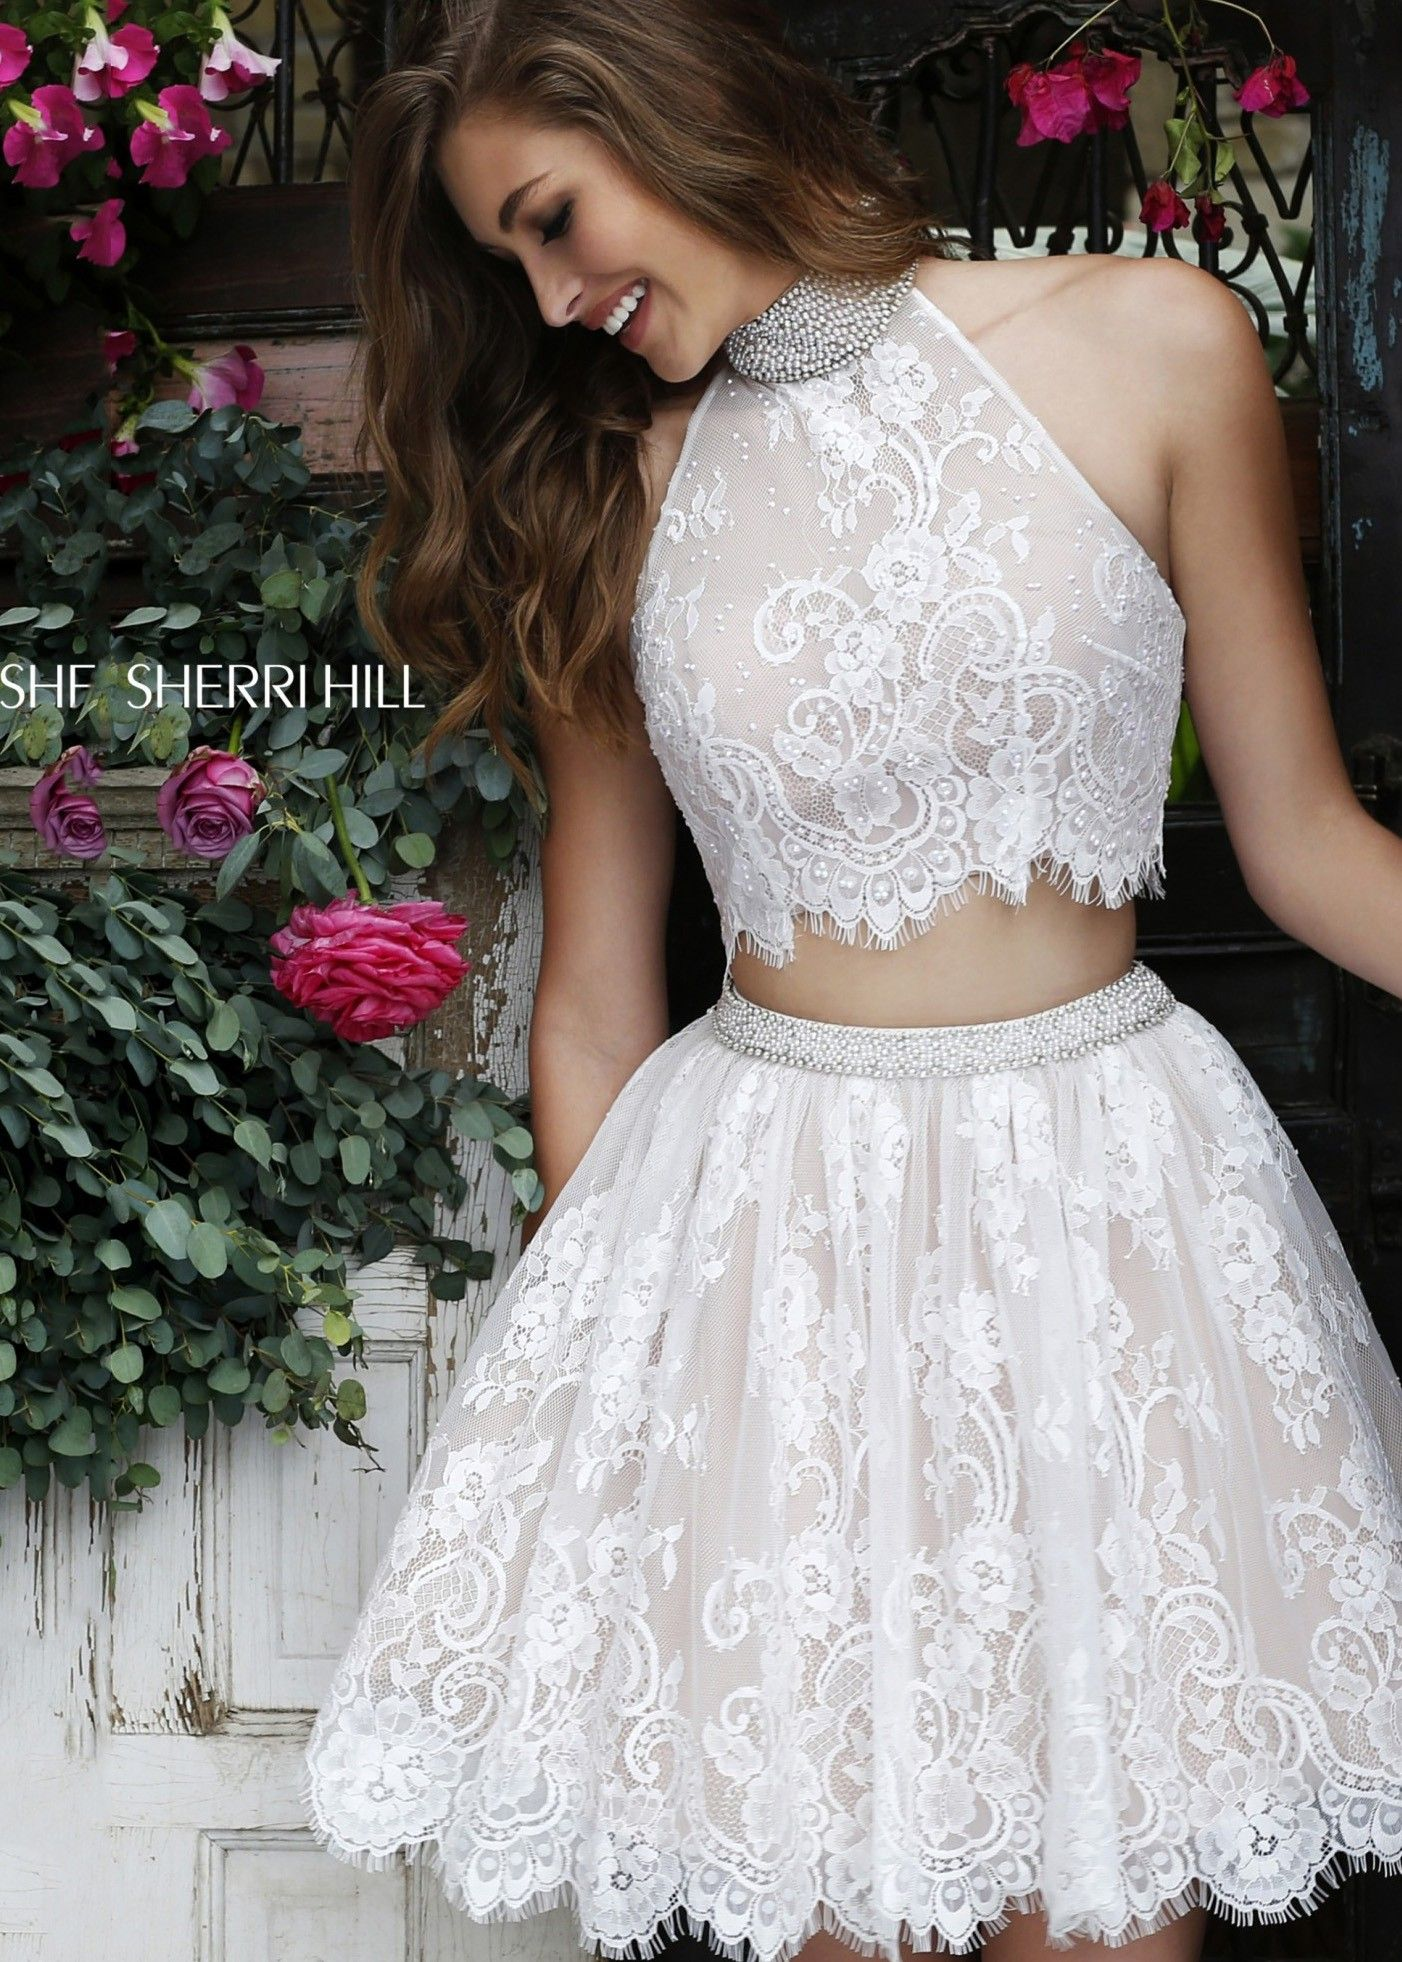 Sherri hill sparkly lace two piece dress